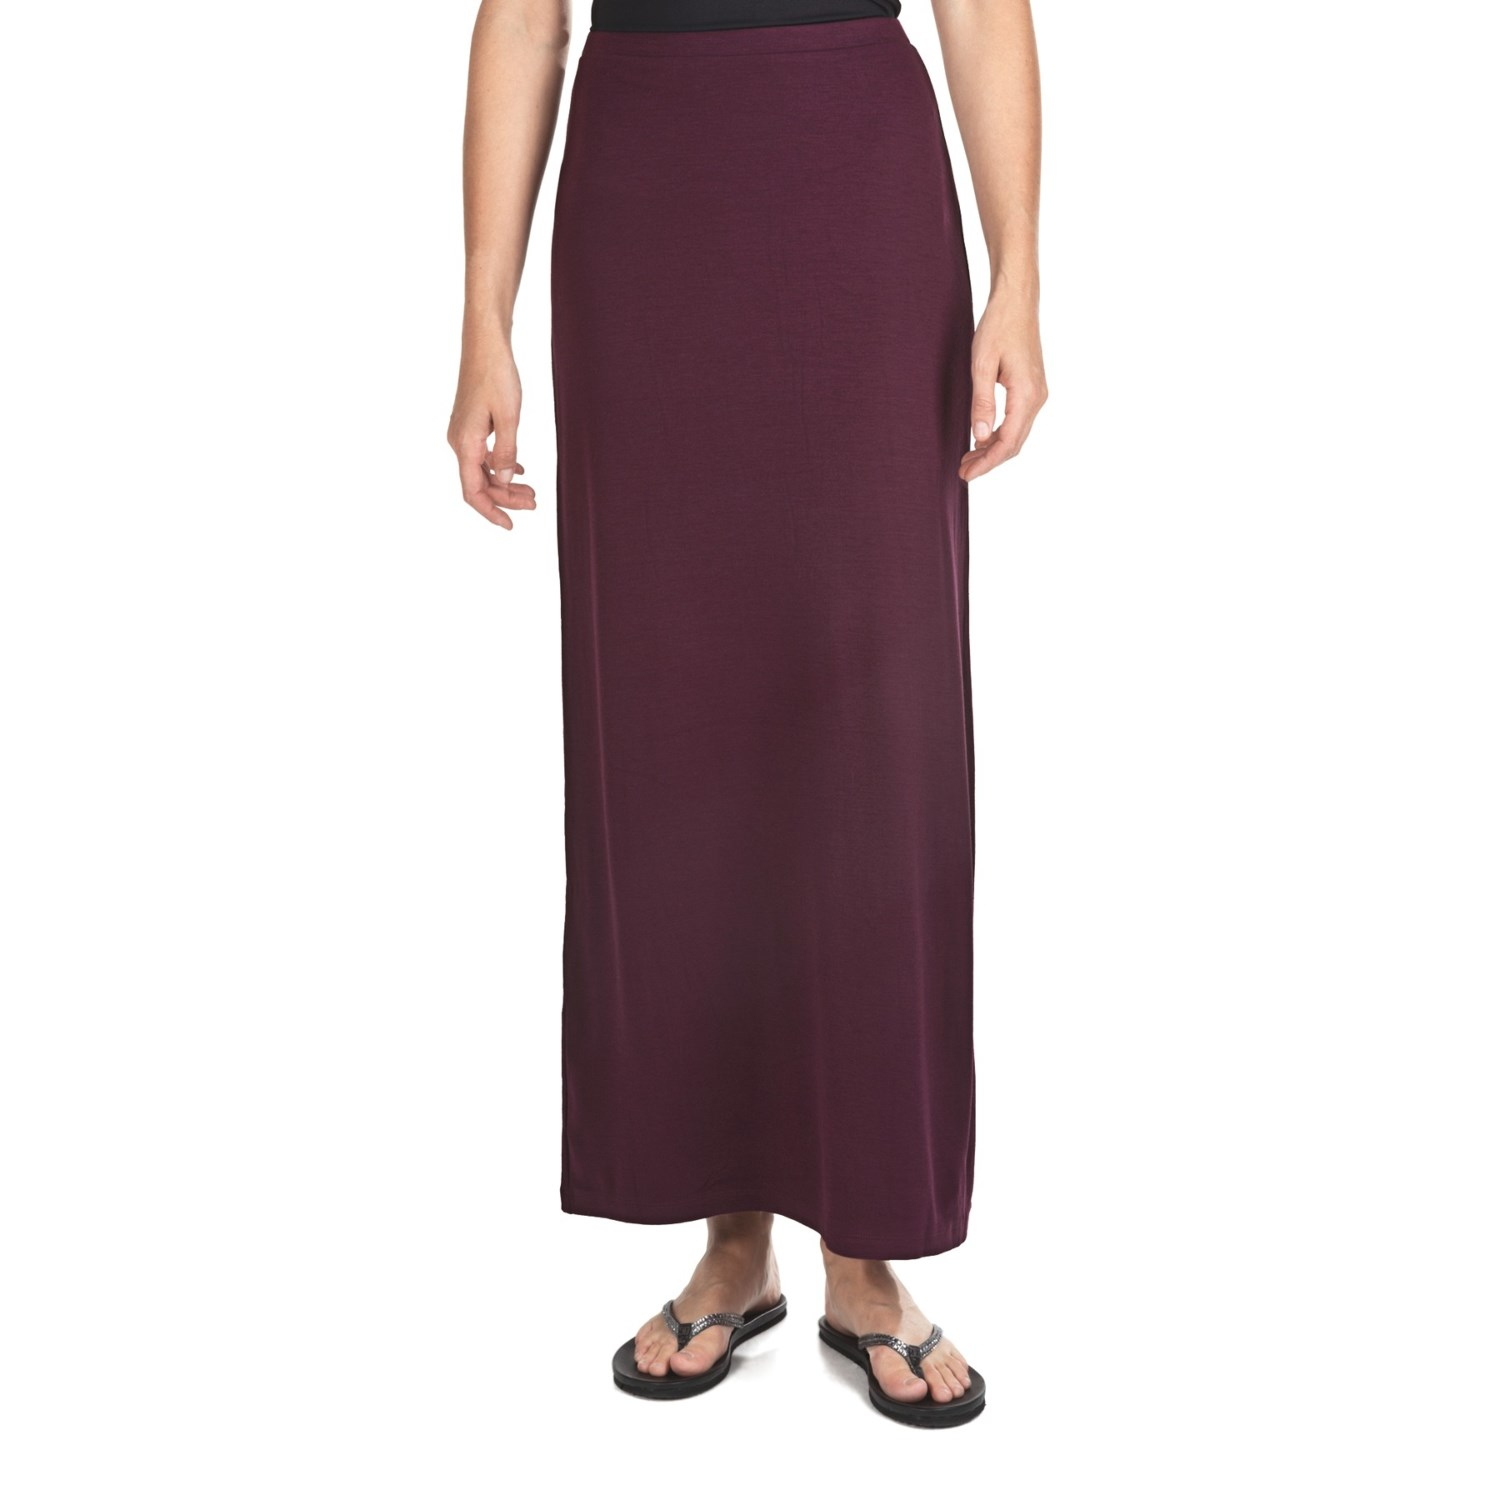 jersey skirt for save 78